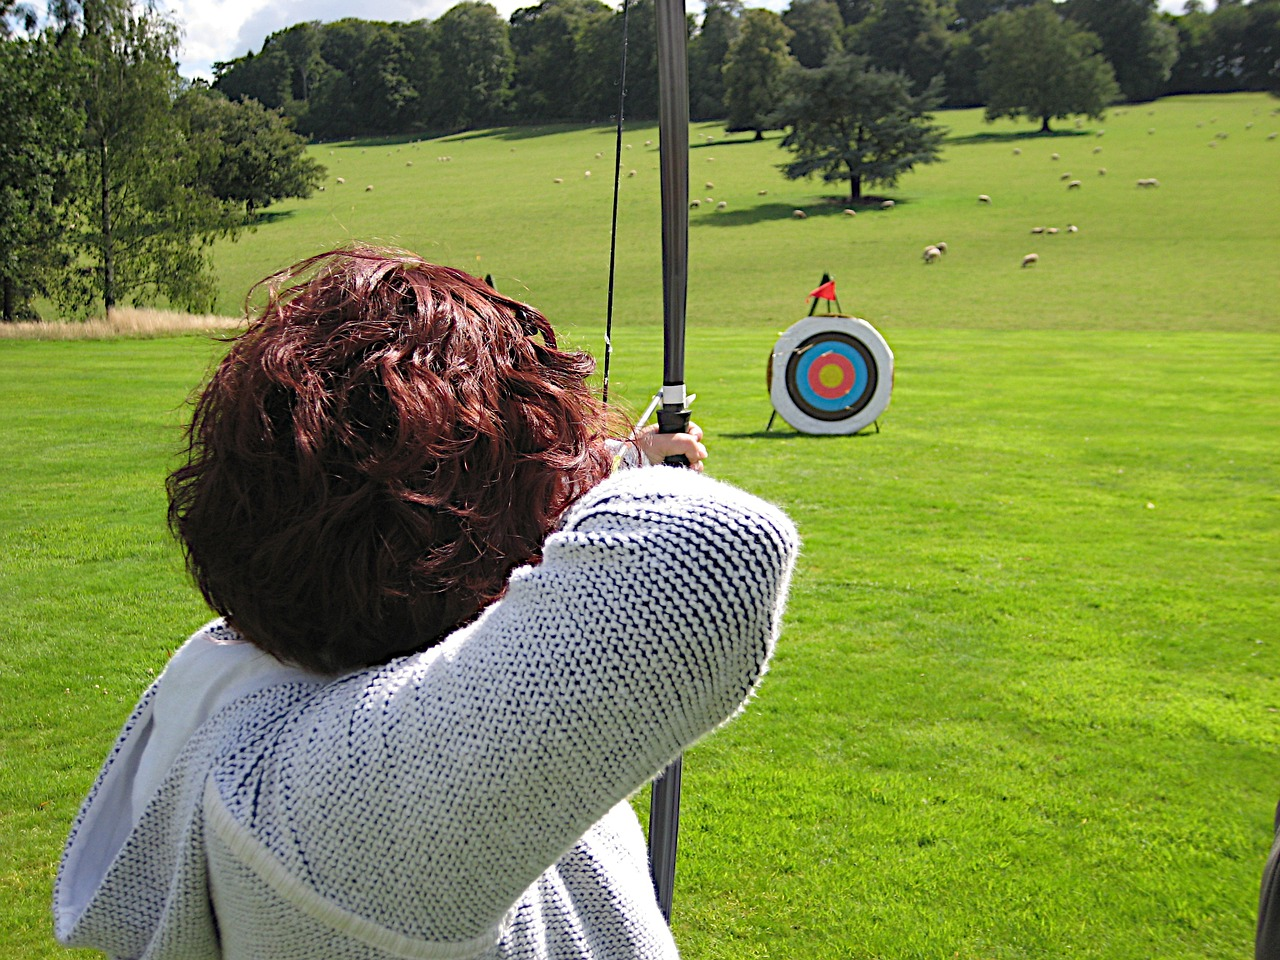 bows-and-arrows-650474_1280.jpg